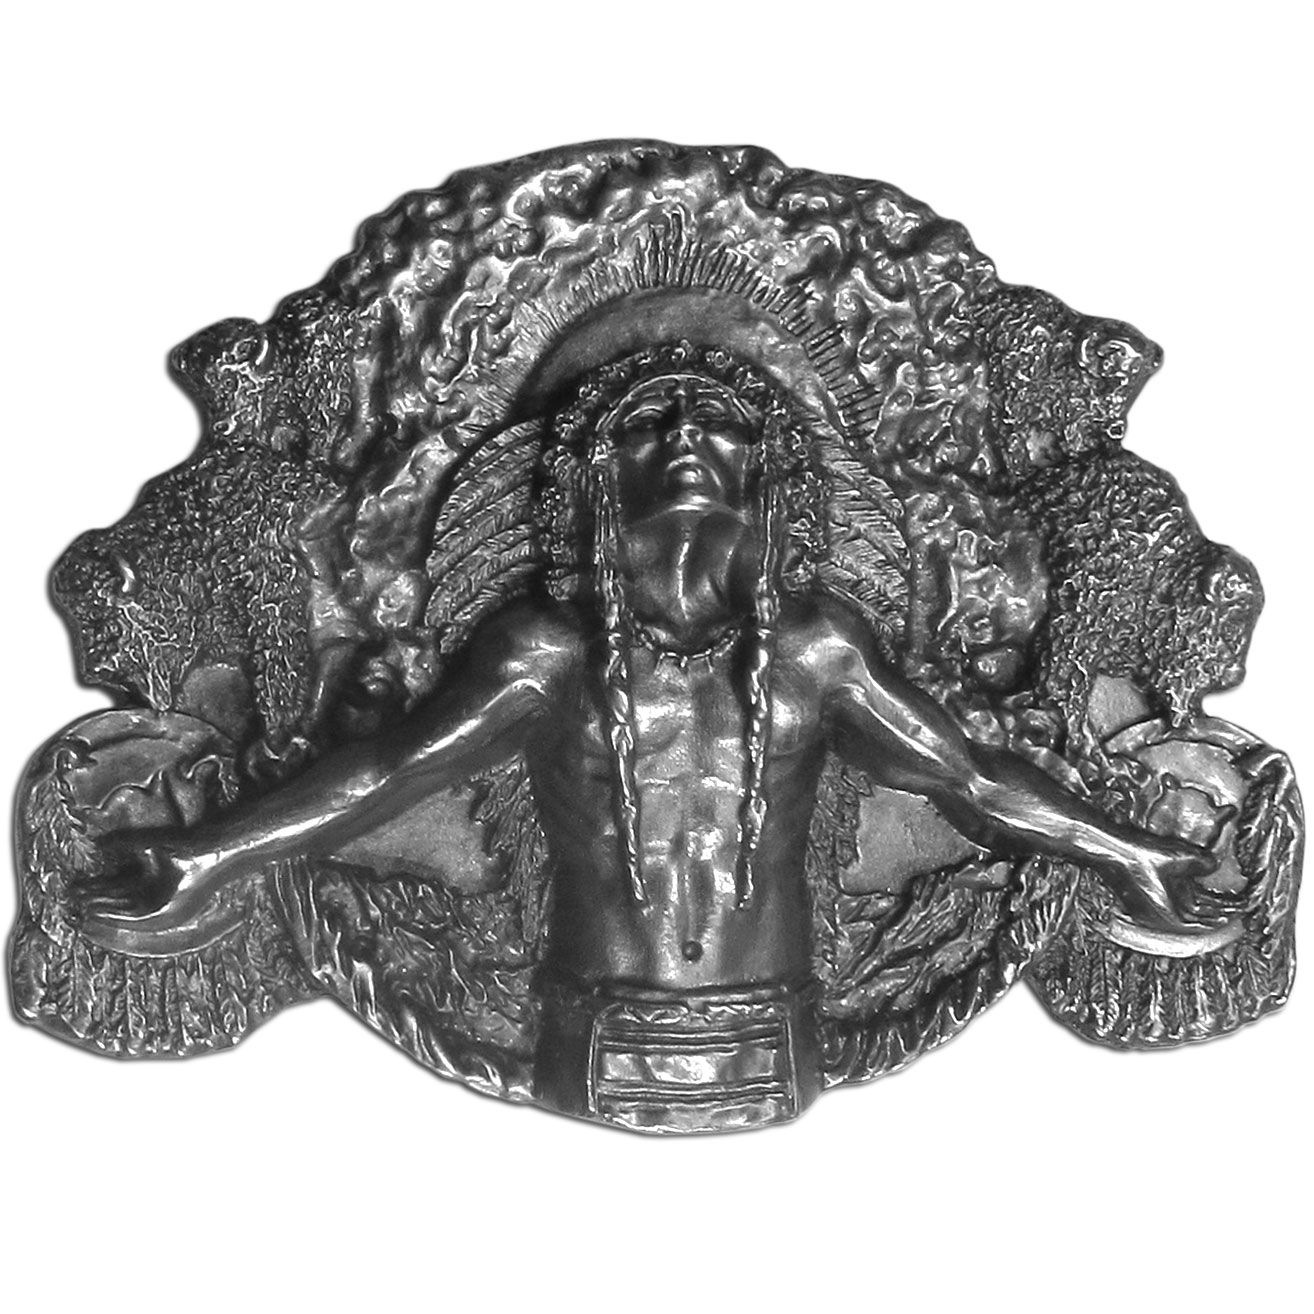 "Great Spirit Antiqued Belt Buckle - This belt buckle has an Indian chief in full headress in the center and is surrounded by bison, dream catchers and feathers.  On the back are the words, """"In a sacred manner I live.  To the heavens I gazed, in a sacred manner I live, my horses are many.""""  This exquisitely carved buckle is made of fully cast metal with a standard bale that fits up to 2 inch belts."